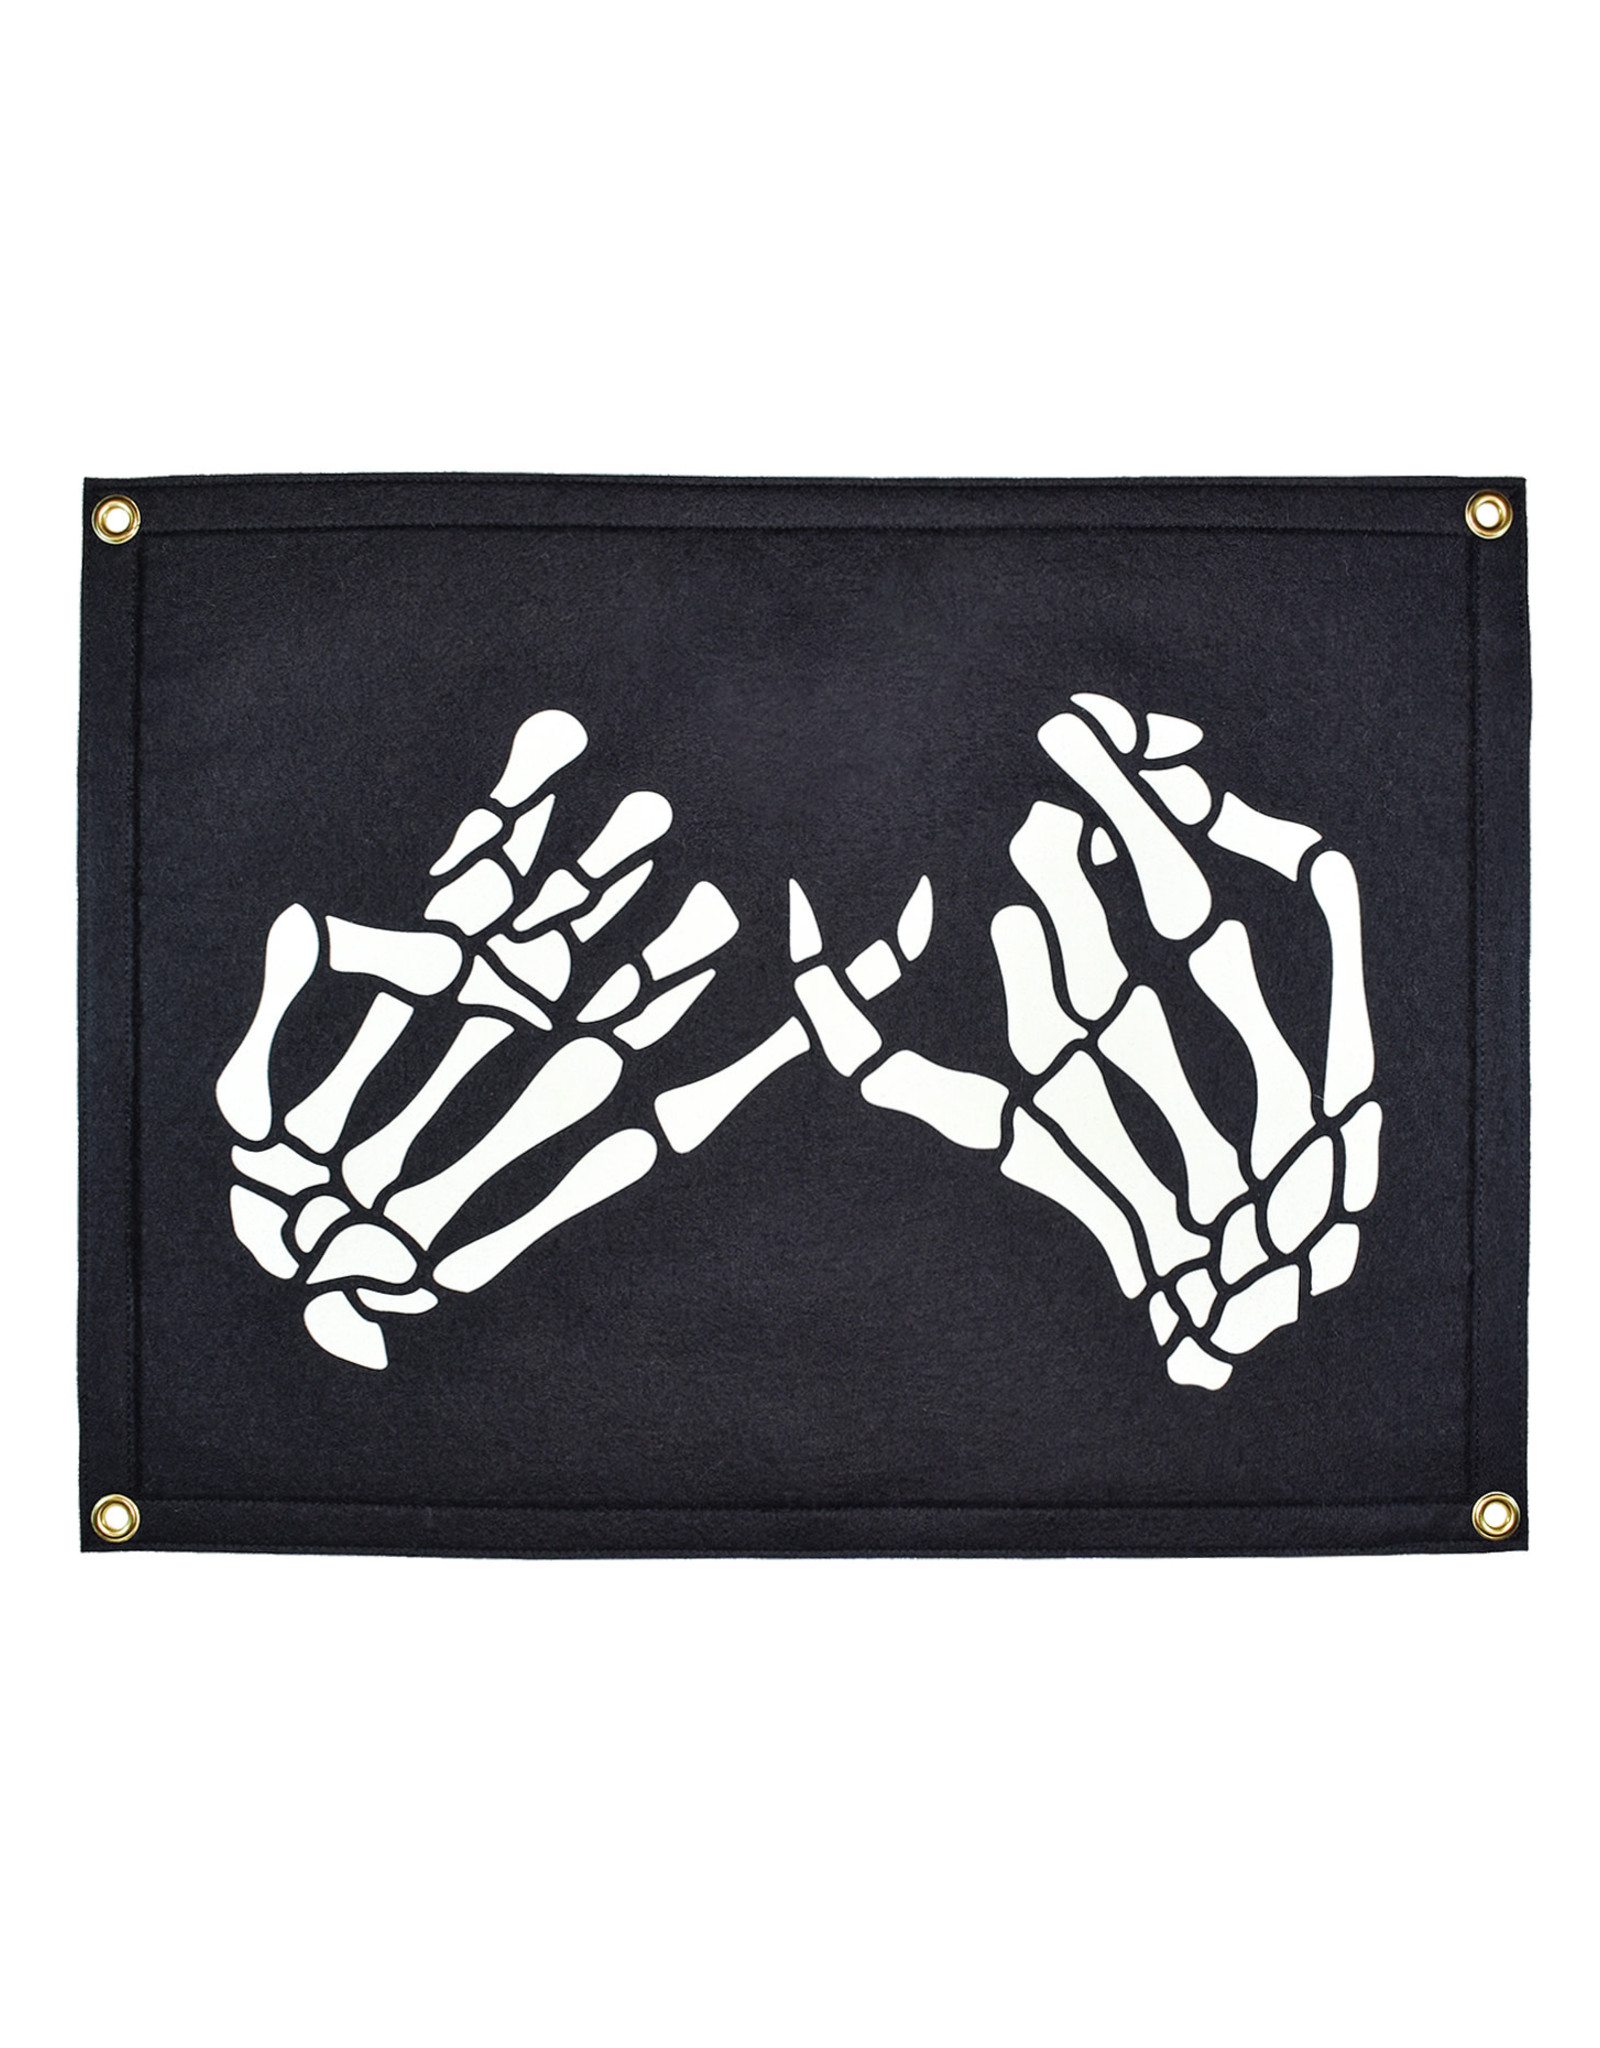 Oxford Pennant Skeleton Pinky Swear Camp Flag